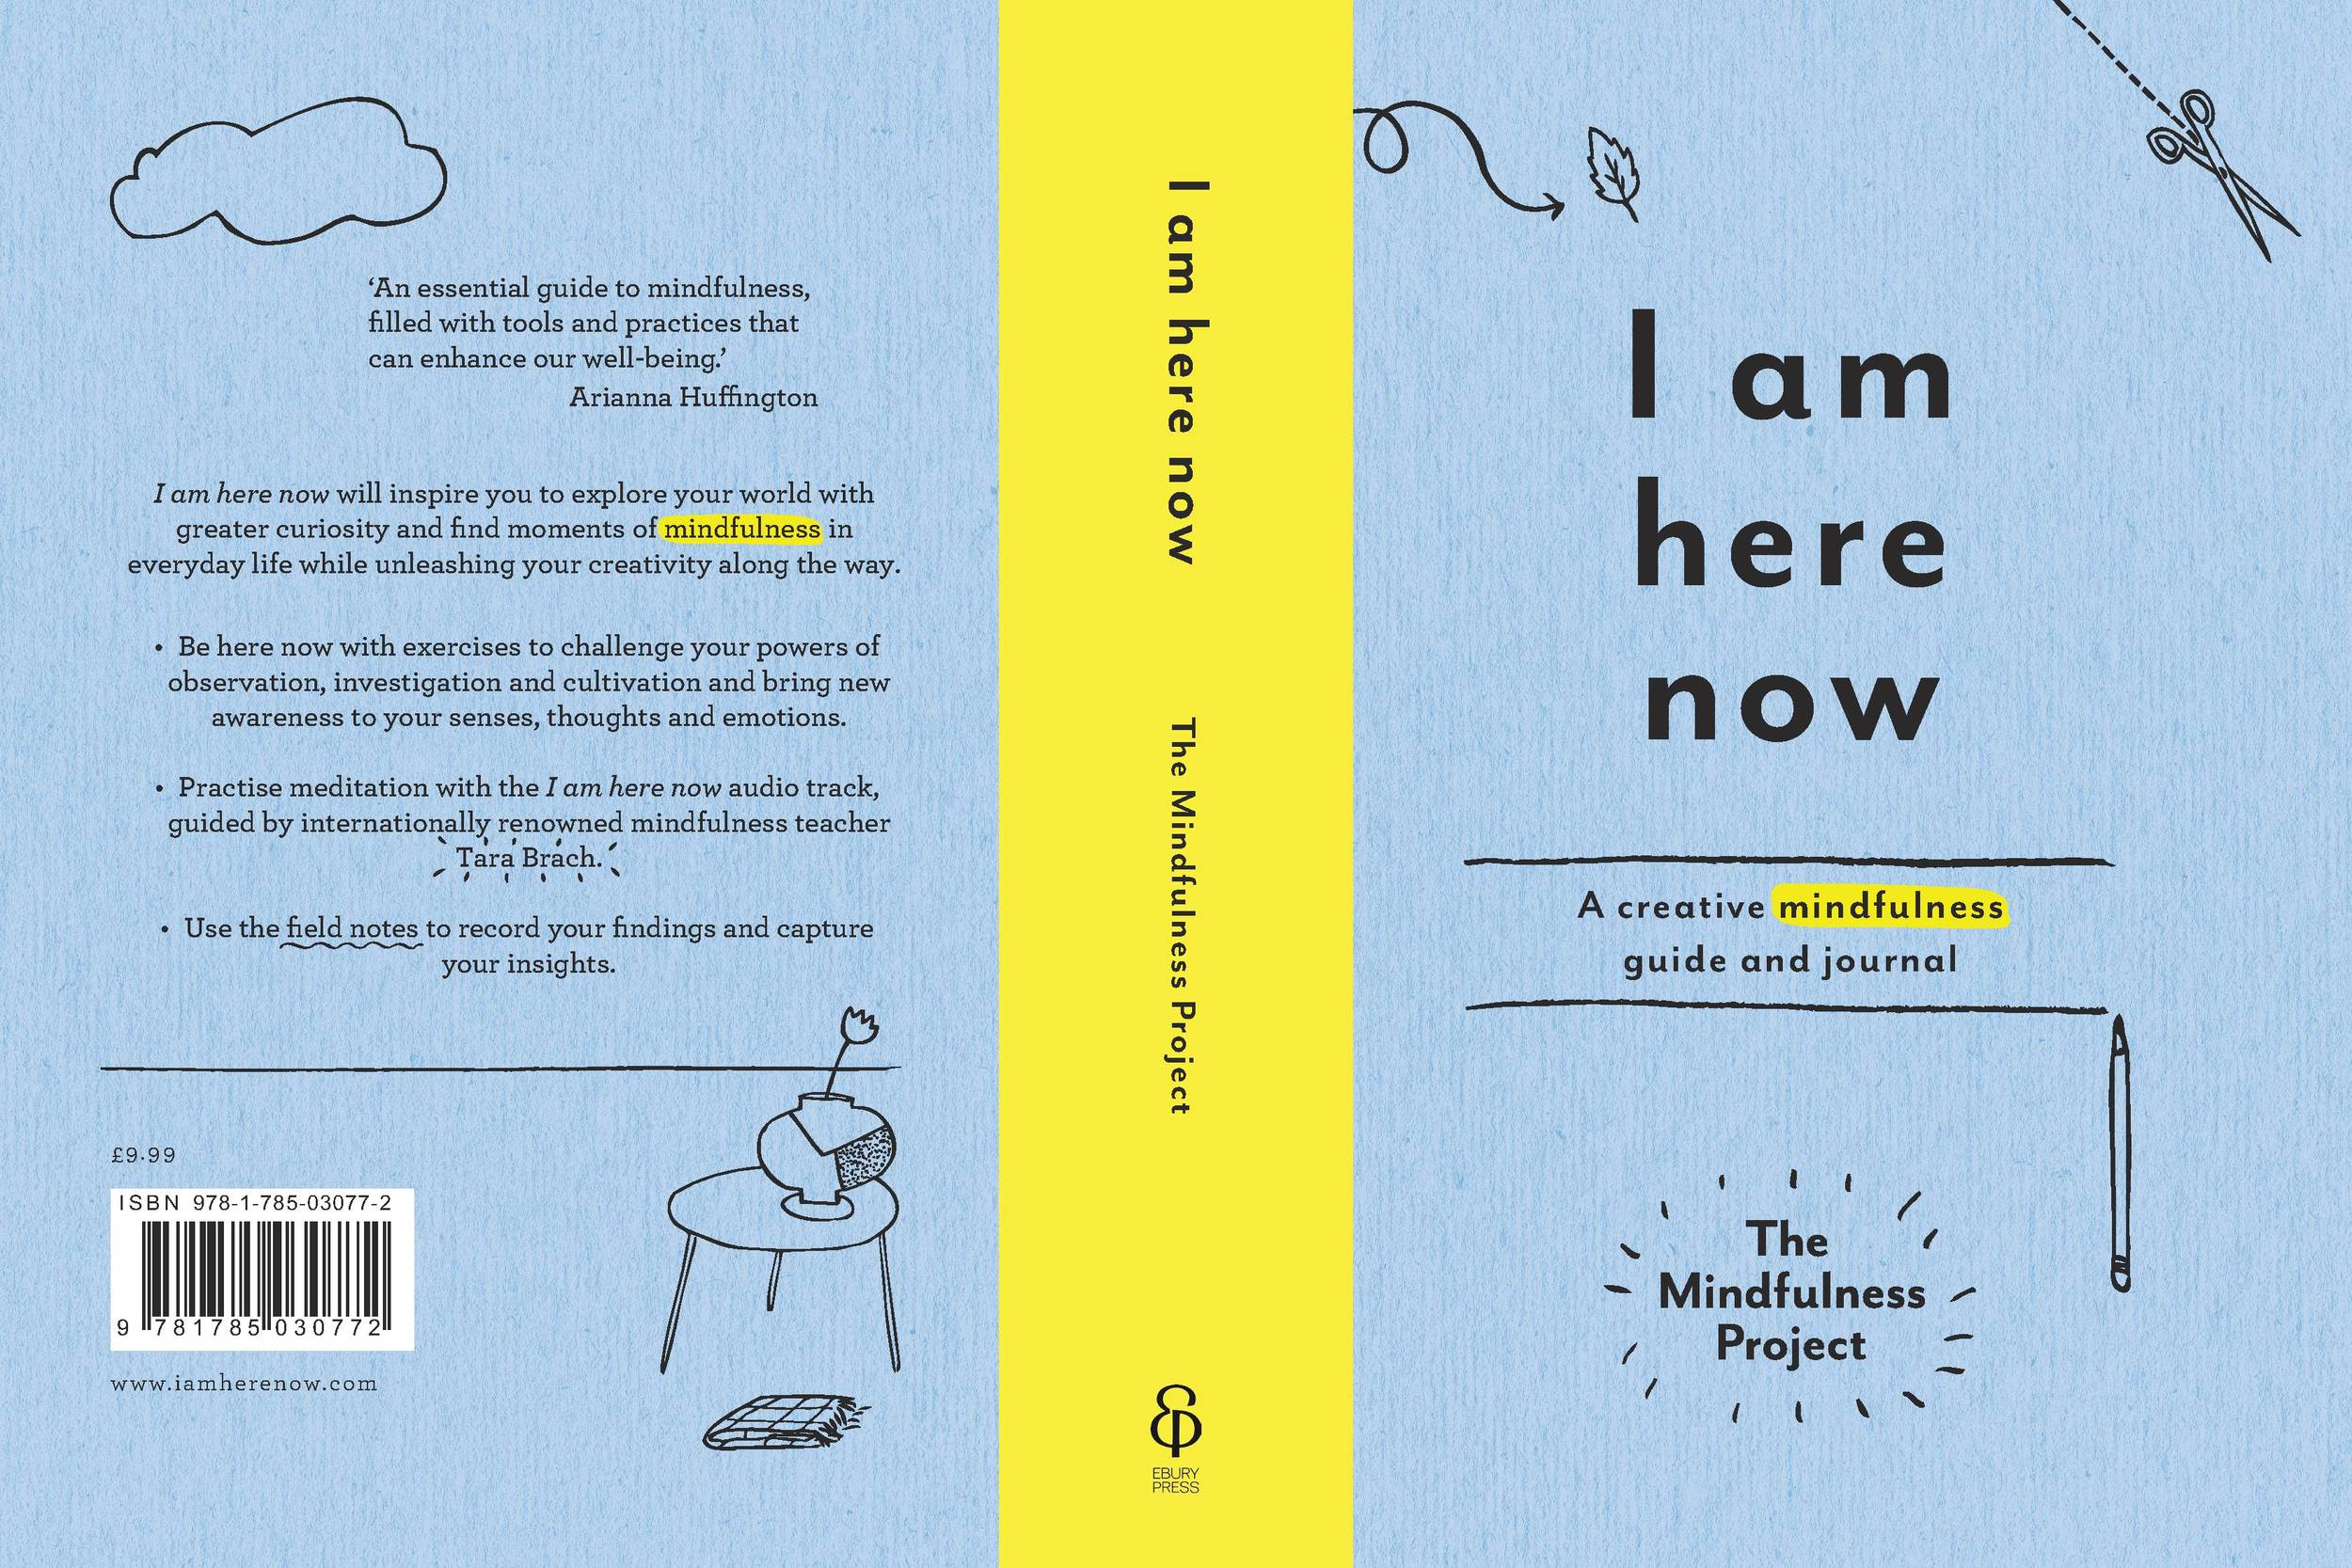 I am here now - a creative mindfulness guide and journal